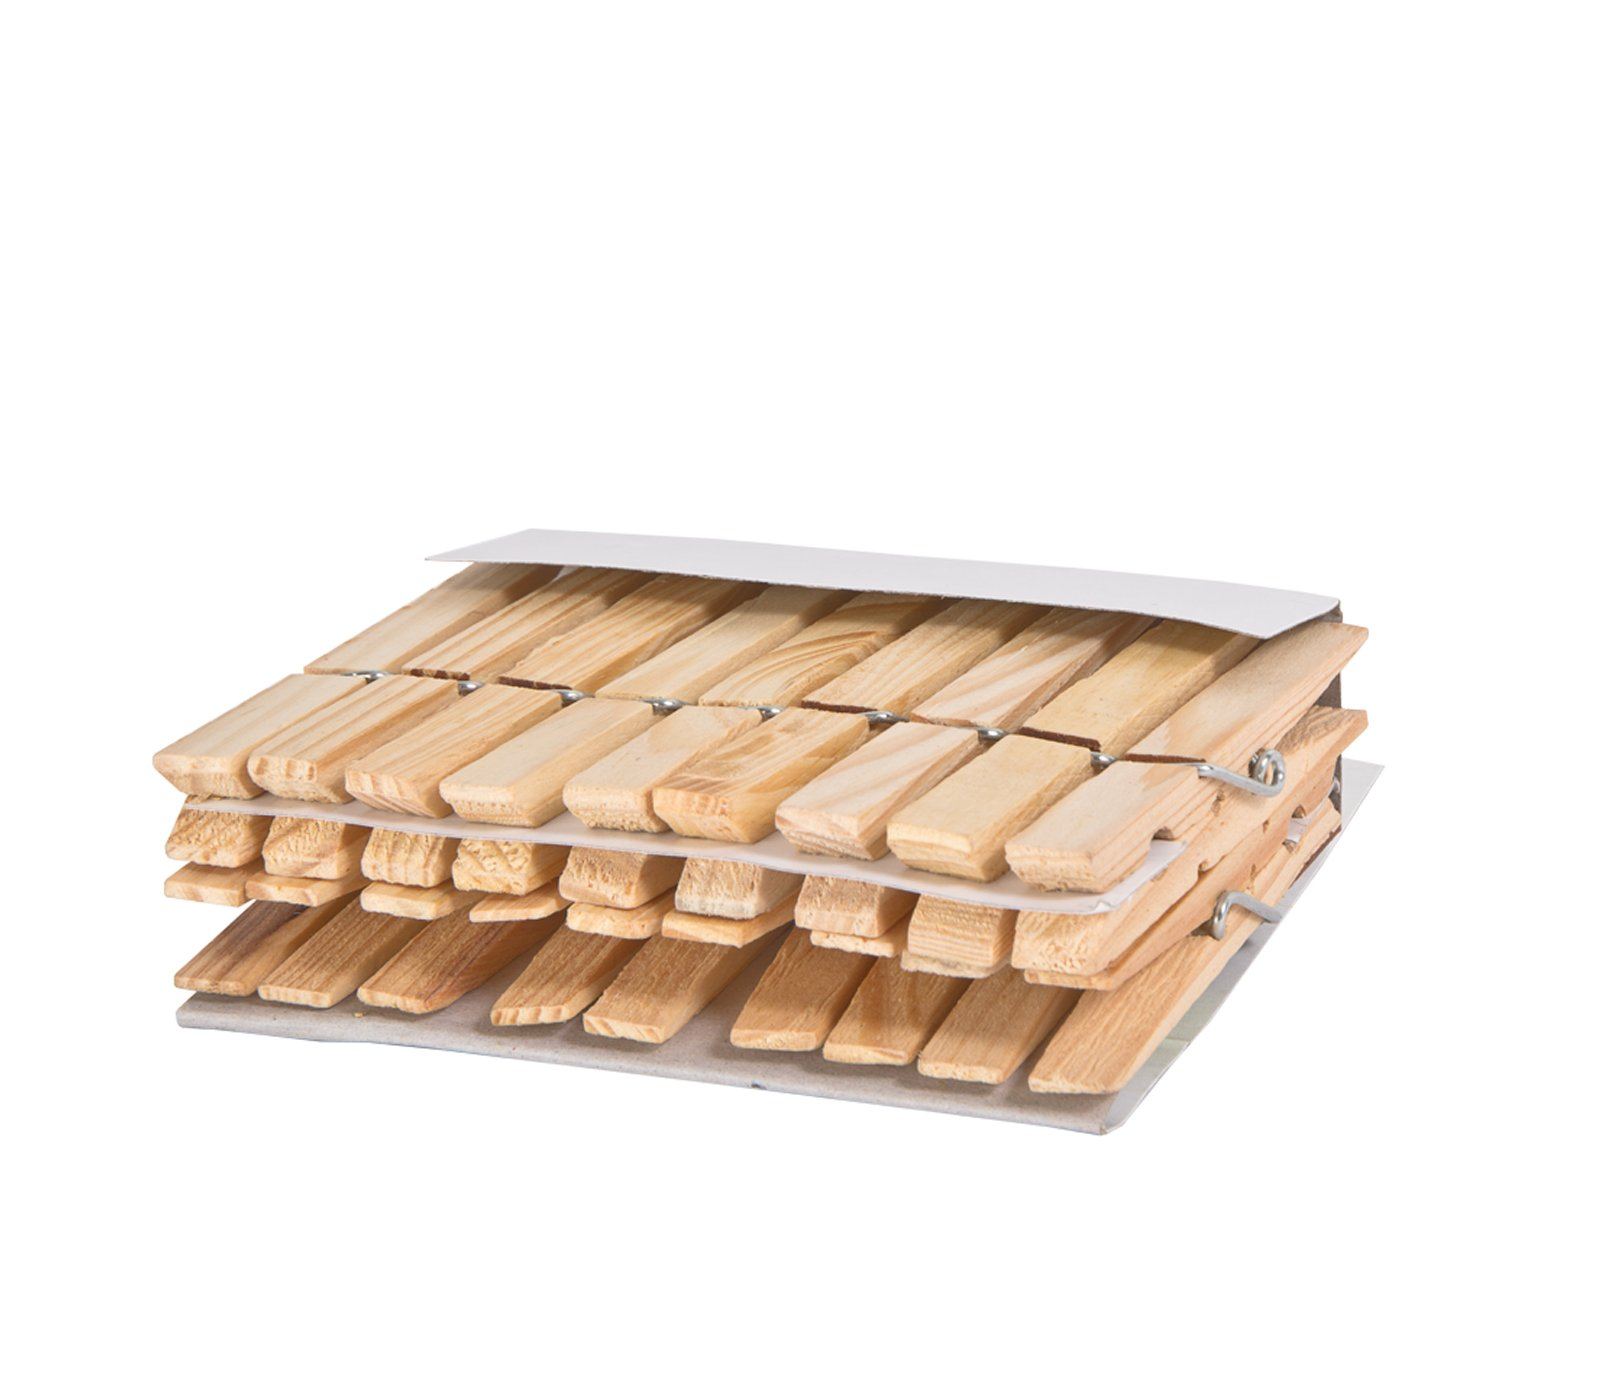 PRO-MART DAZZ Heavy Duty Wooden Clothespins, 4 Coil, 18 Pack